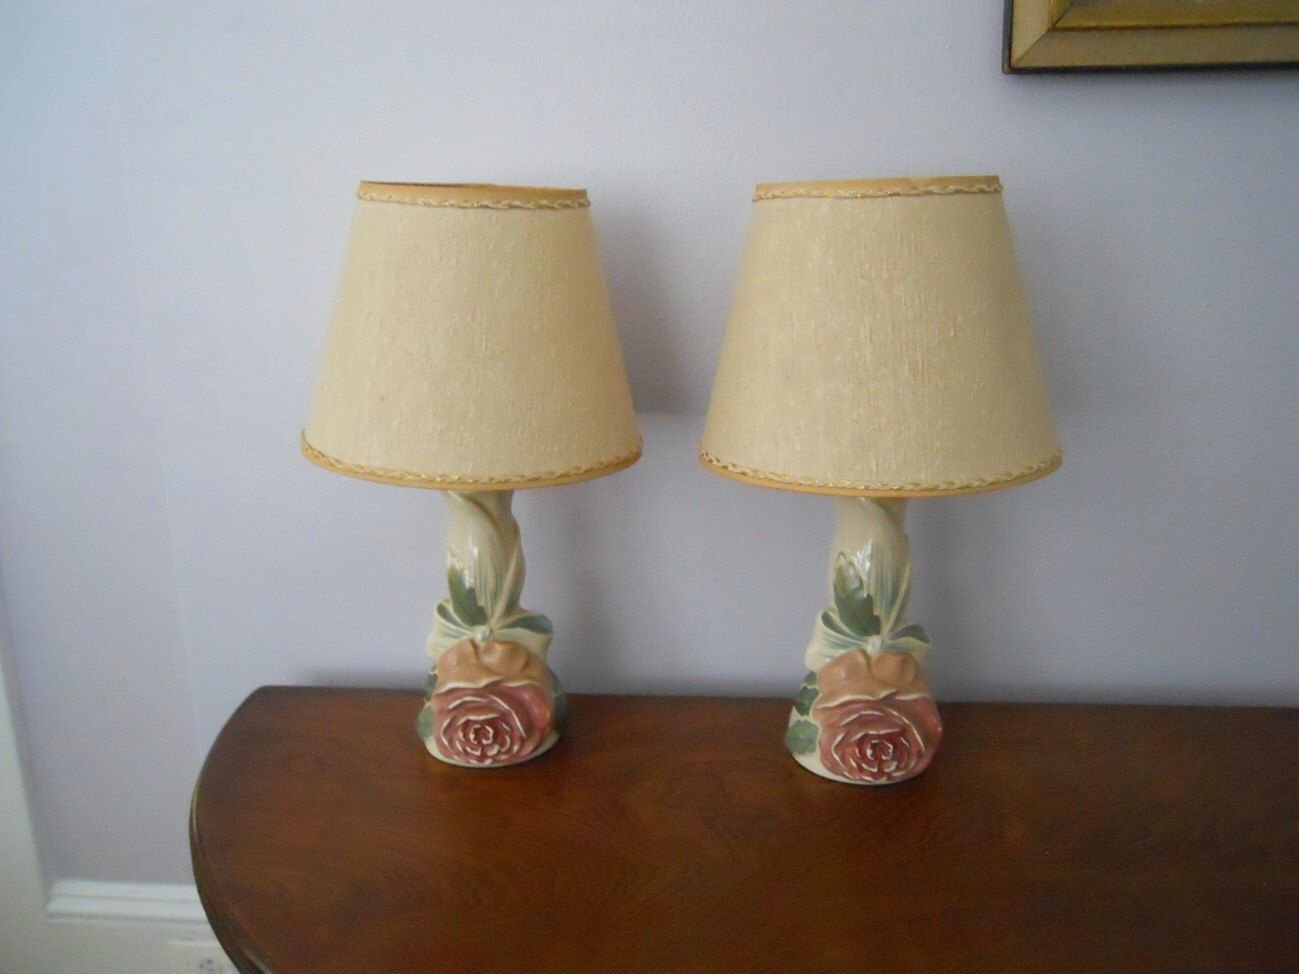 Vintage Bedroom Vanity Table Lamps Matched Pair Shabby Chic Romantic With  Shades By SwanVintageFinds On Etsy